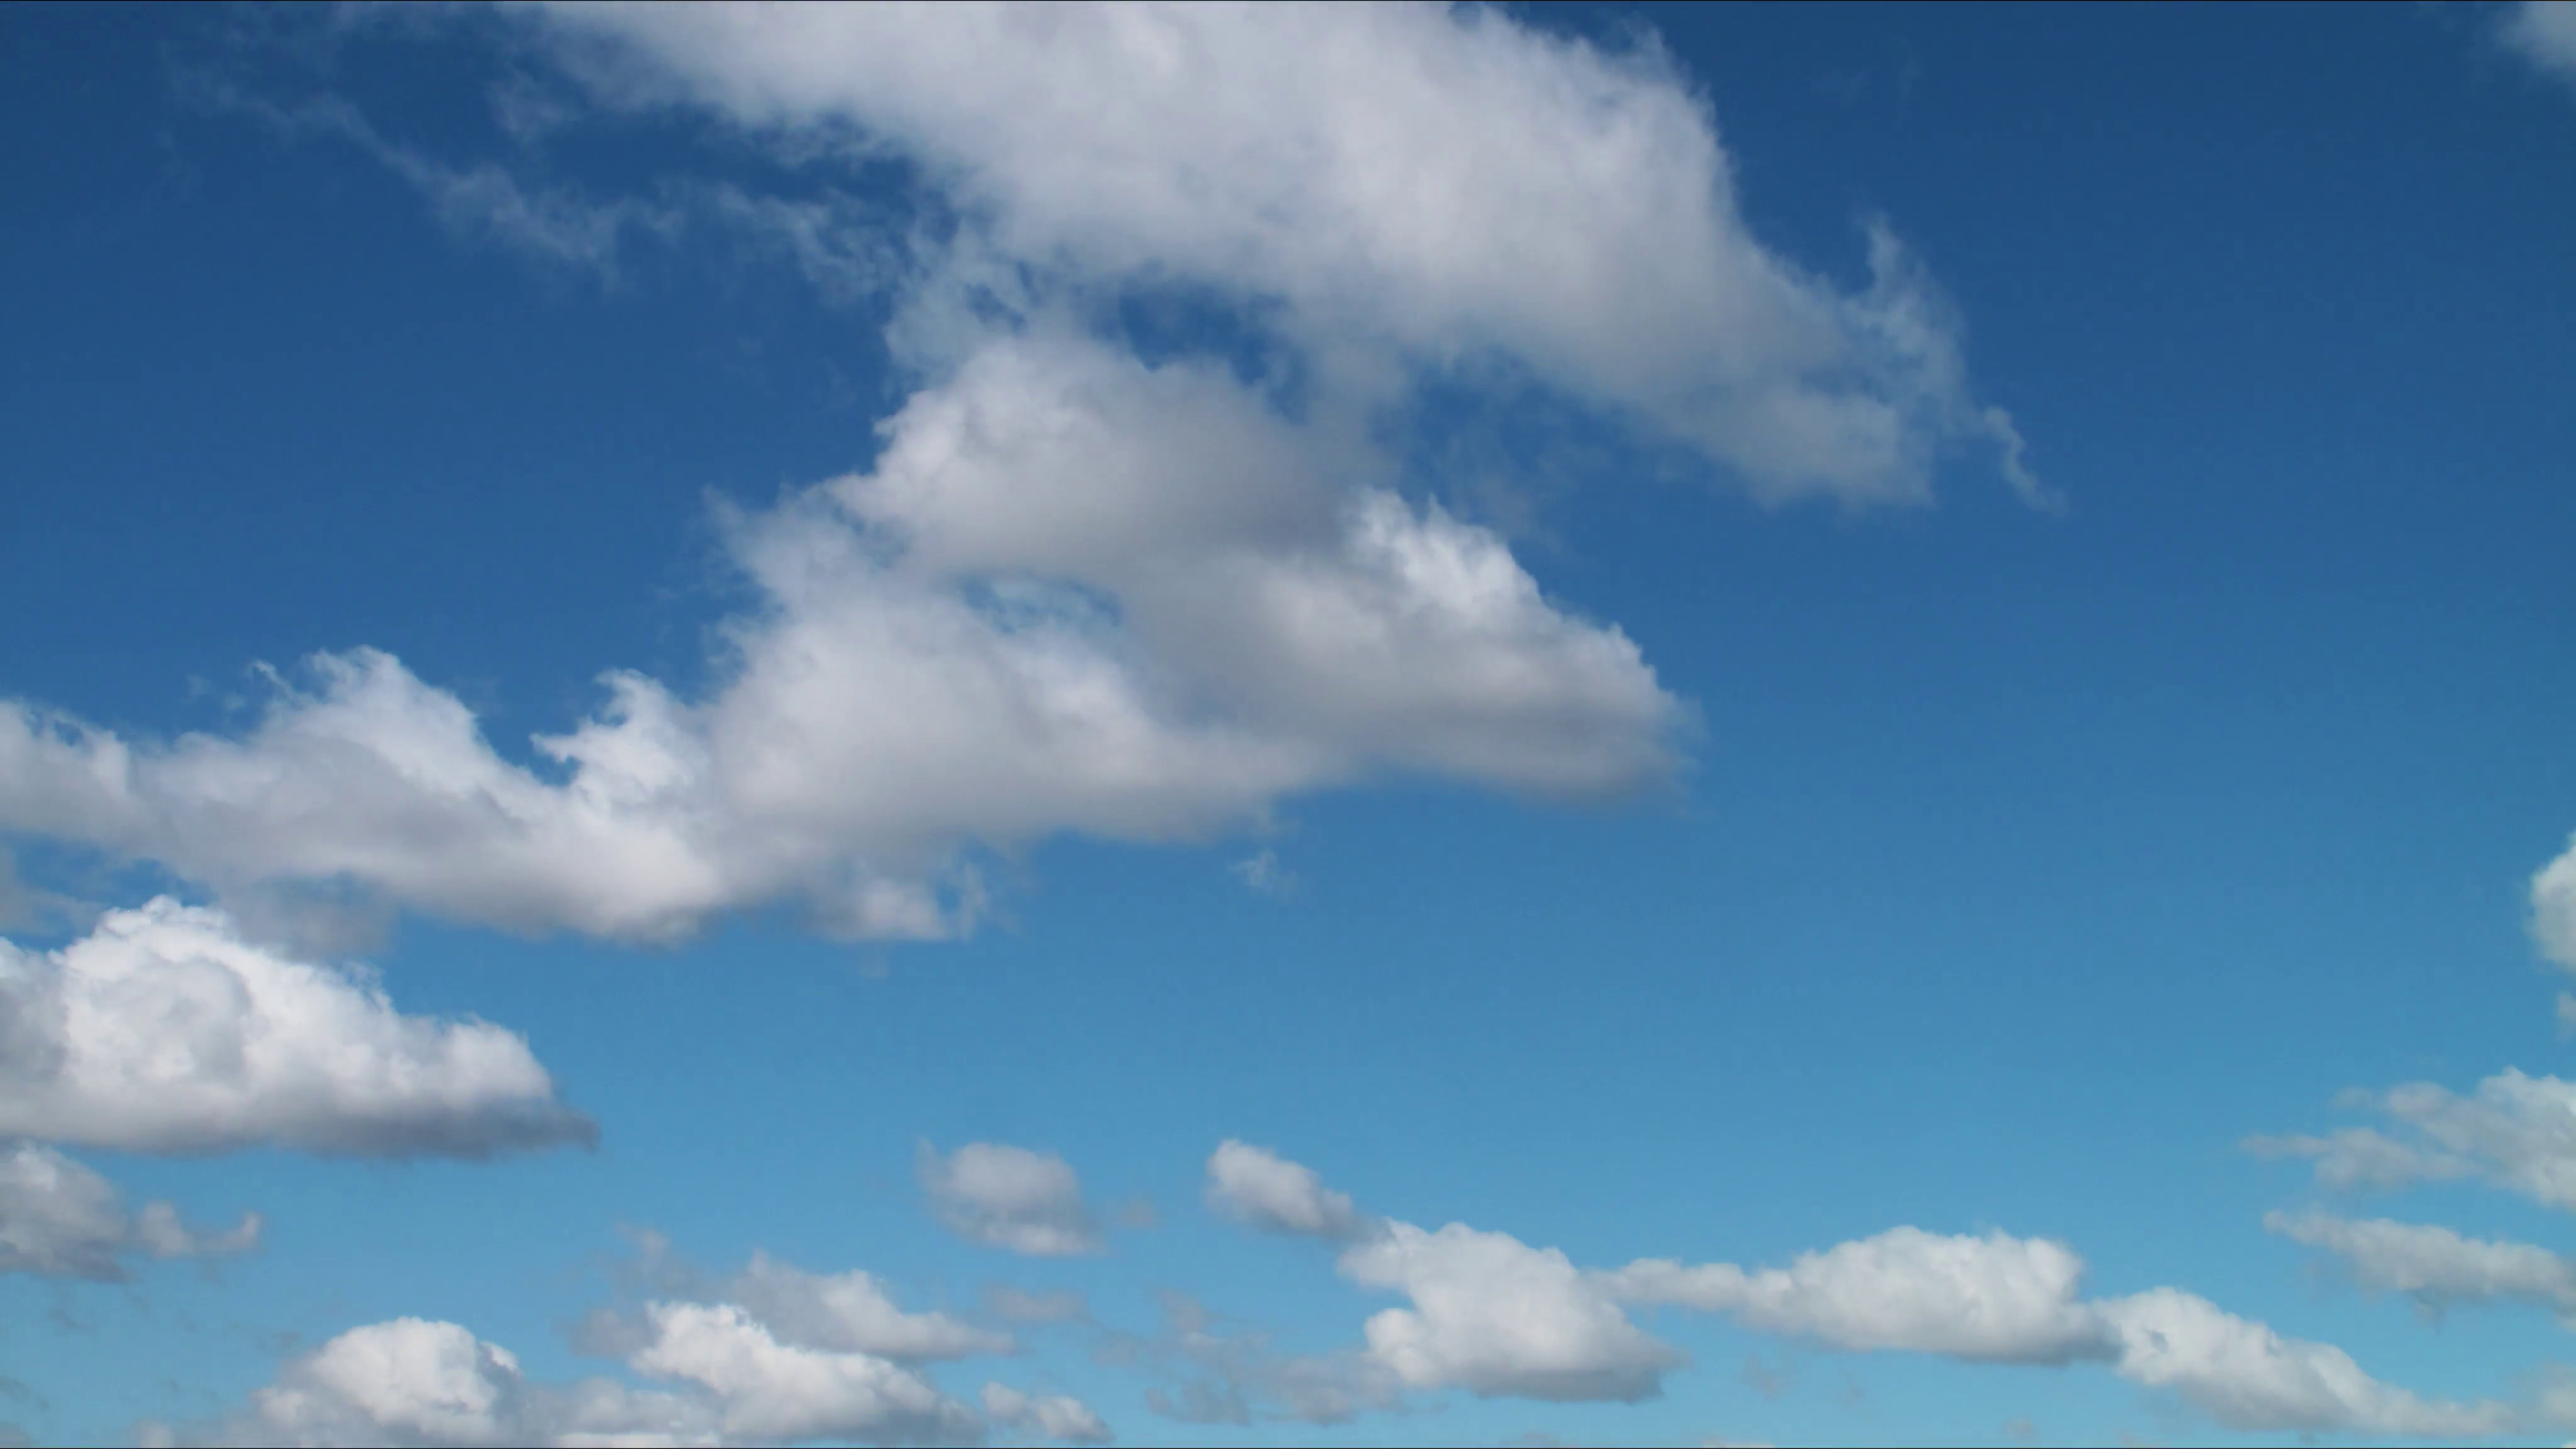 White clouds moving over blue sky background. 4K UHD timelapse. Stock Video  Footage - VideoBlocks - PNG Sky Background